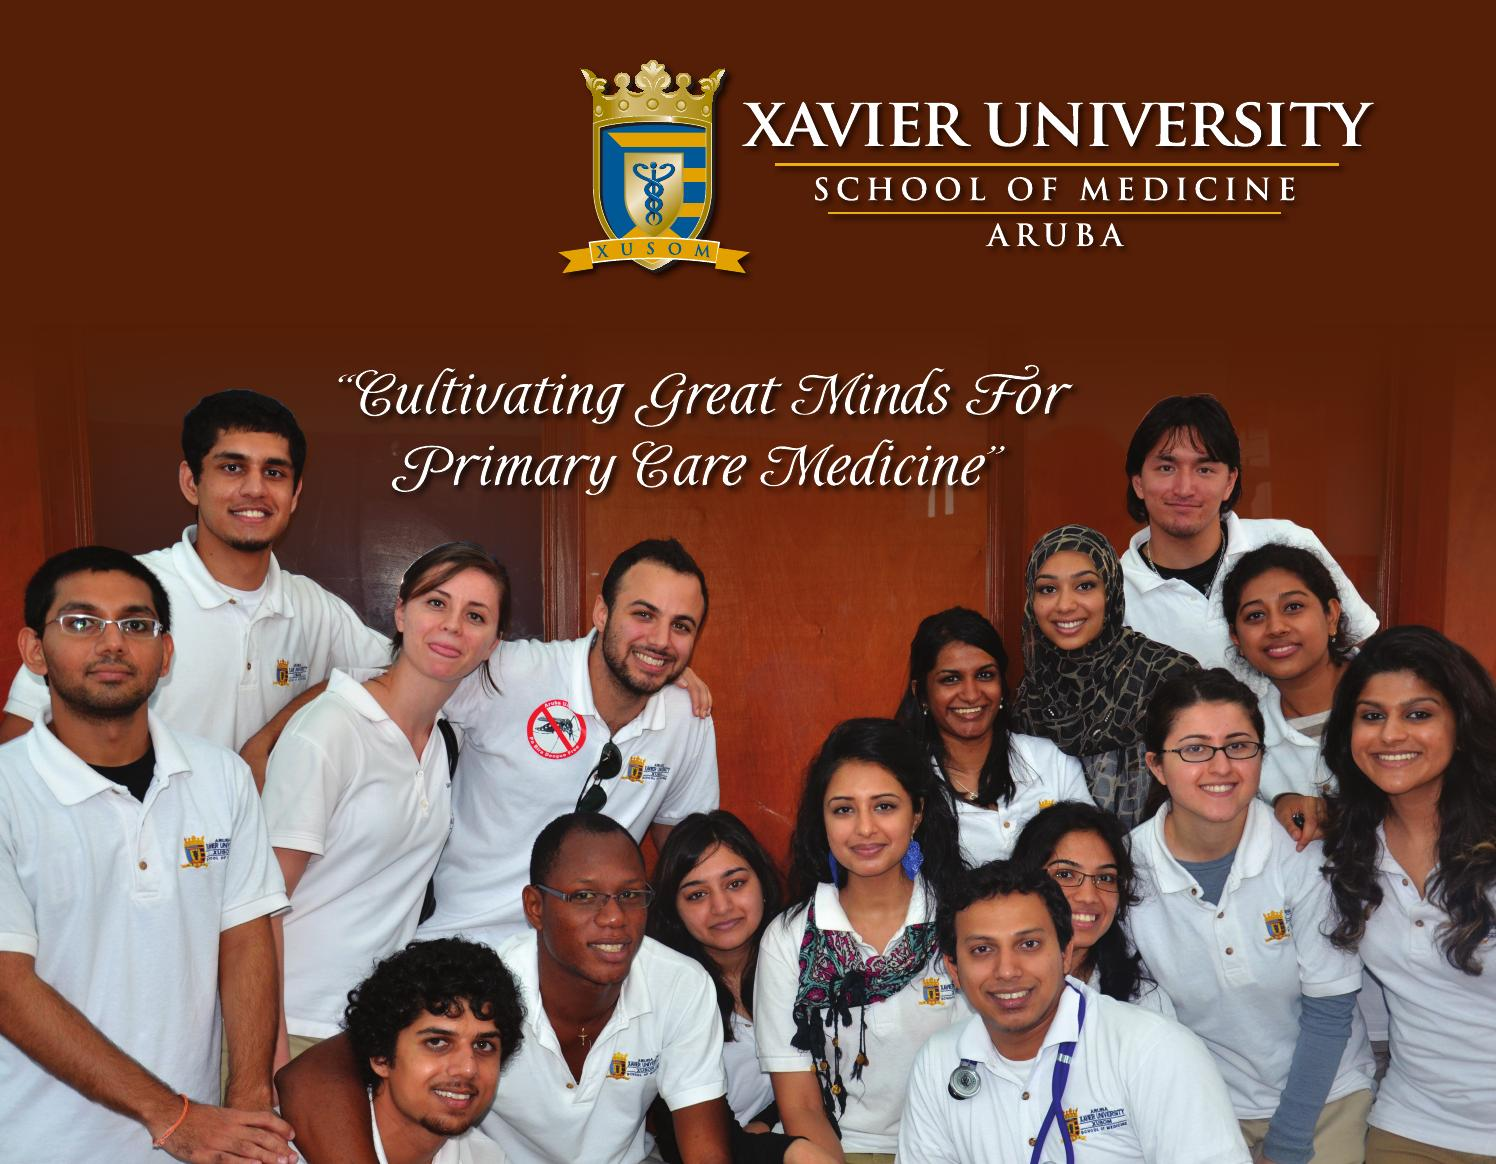 ea56ee14e49 Acceptance package 2016 new by Xavier University School of Medicine - issuu